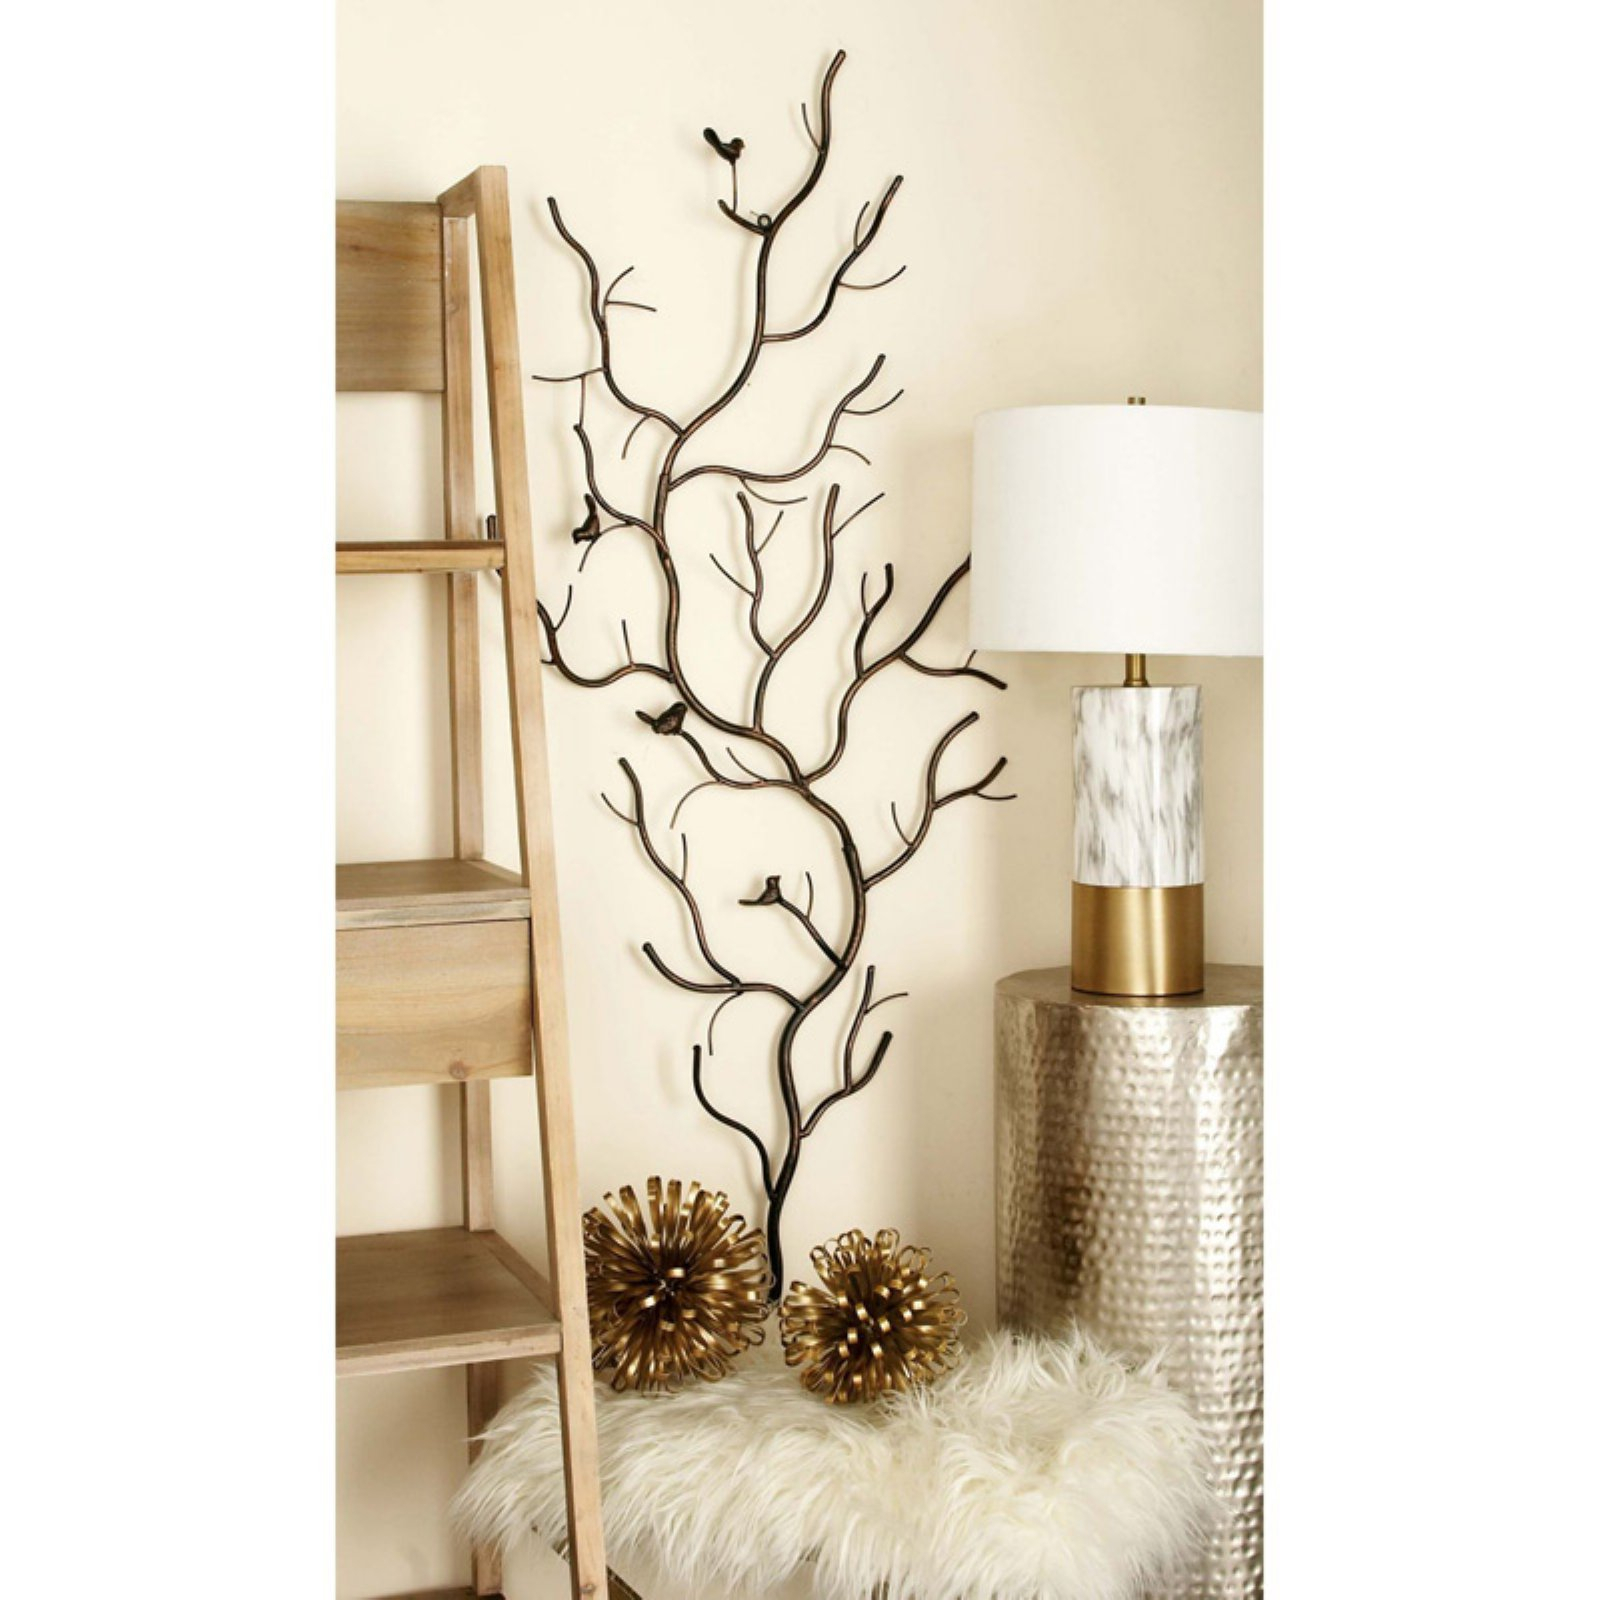 Well Liked Leaves Metal Sculpture Wall Decor By Winston Porter Pertaining To Decmode Metal Wall Sculpture – Branch & Birds (View 16 of 20)